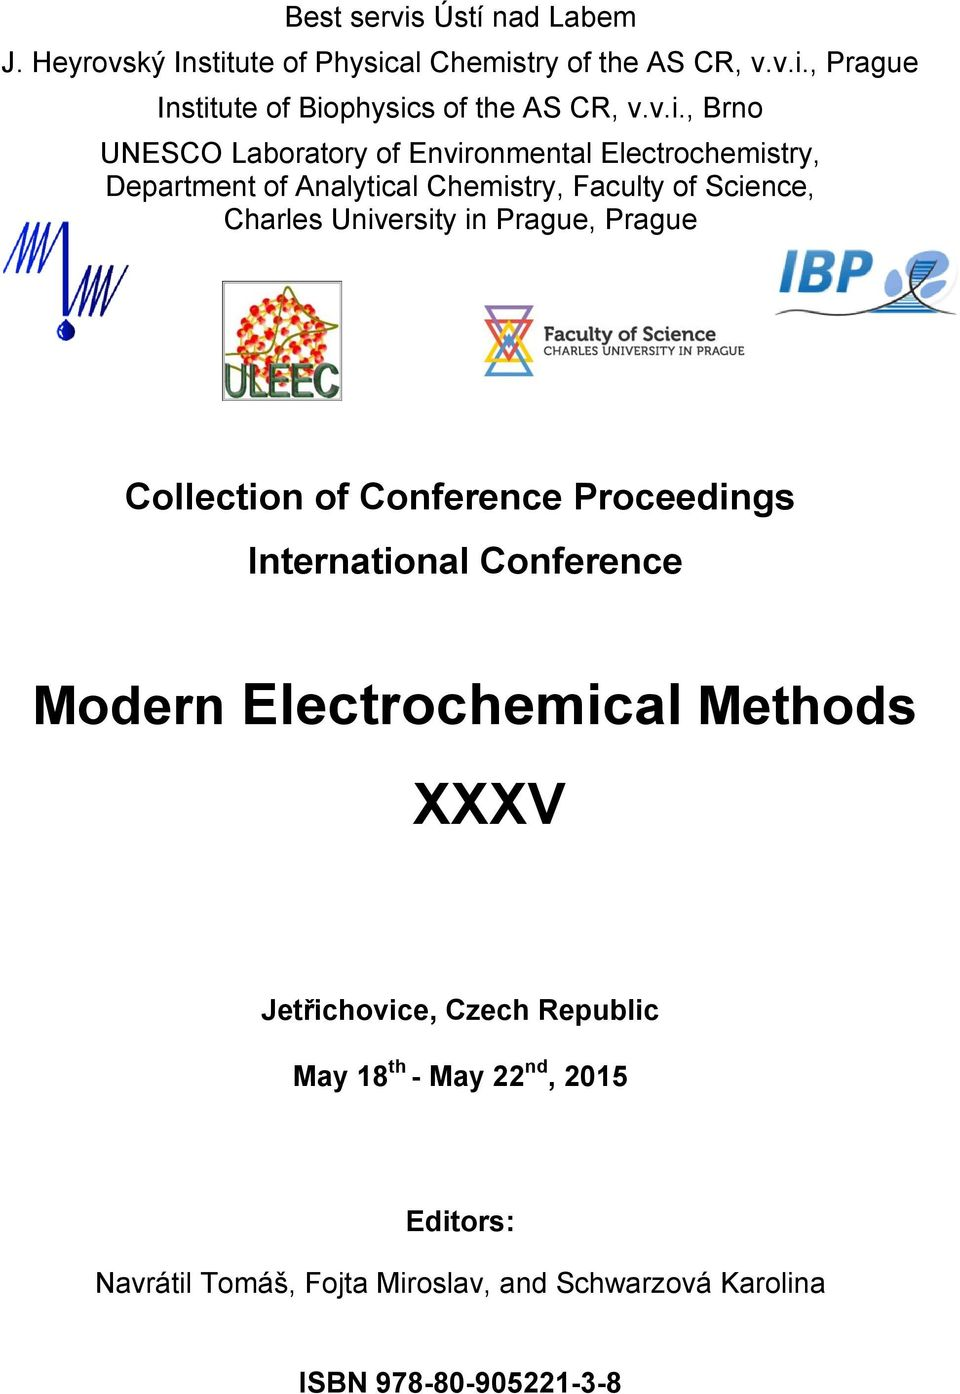 University in Prague, Prague Collection of Conference Proceedings International Conference Modern Electrochemical Methods XXXV